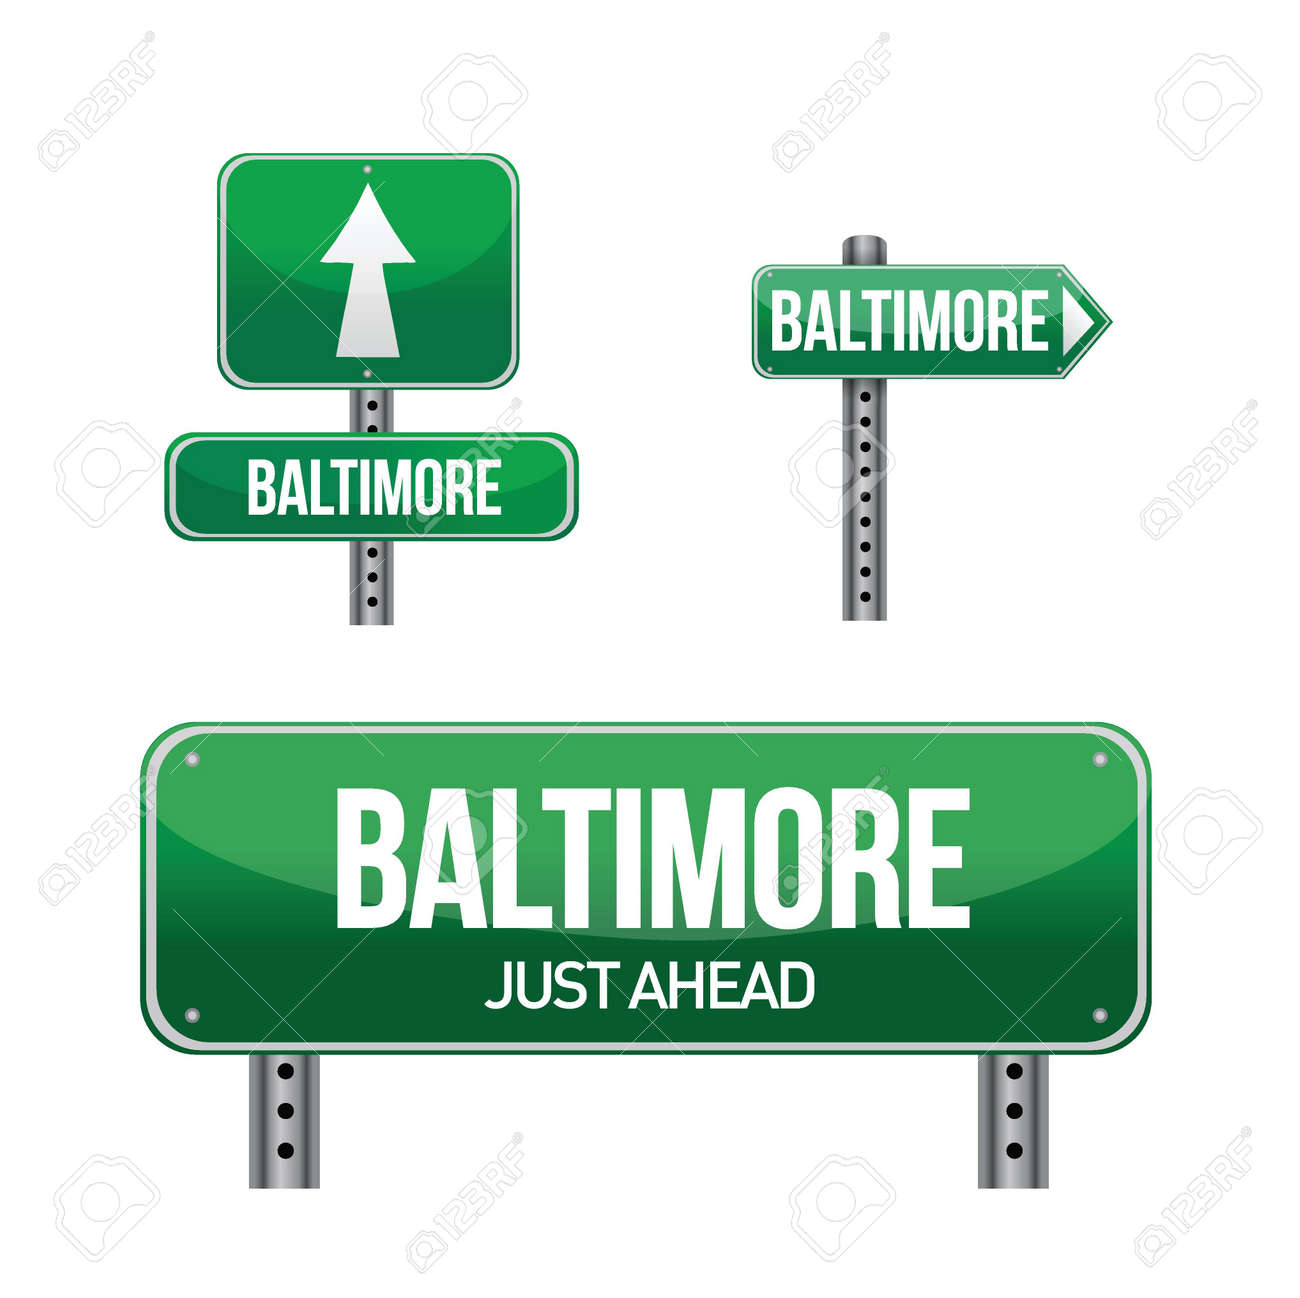 Baltimore city road sign illustration design over white Stock Vector - 18324221